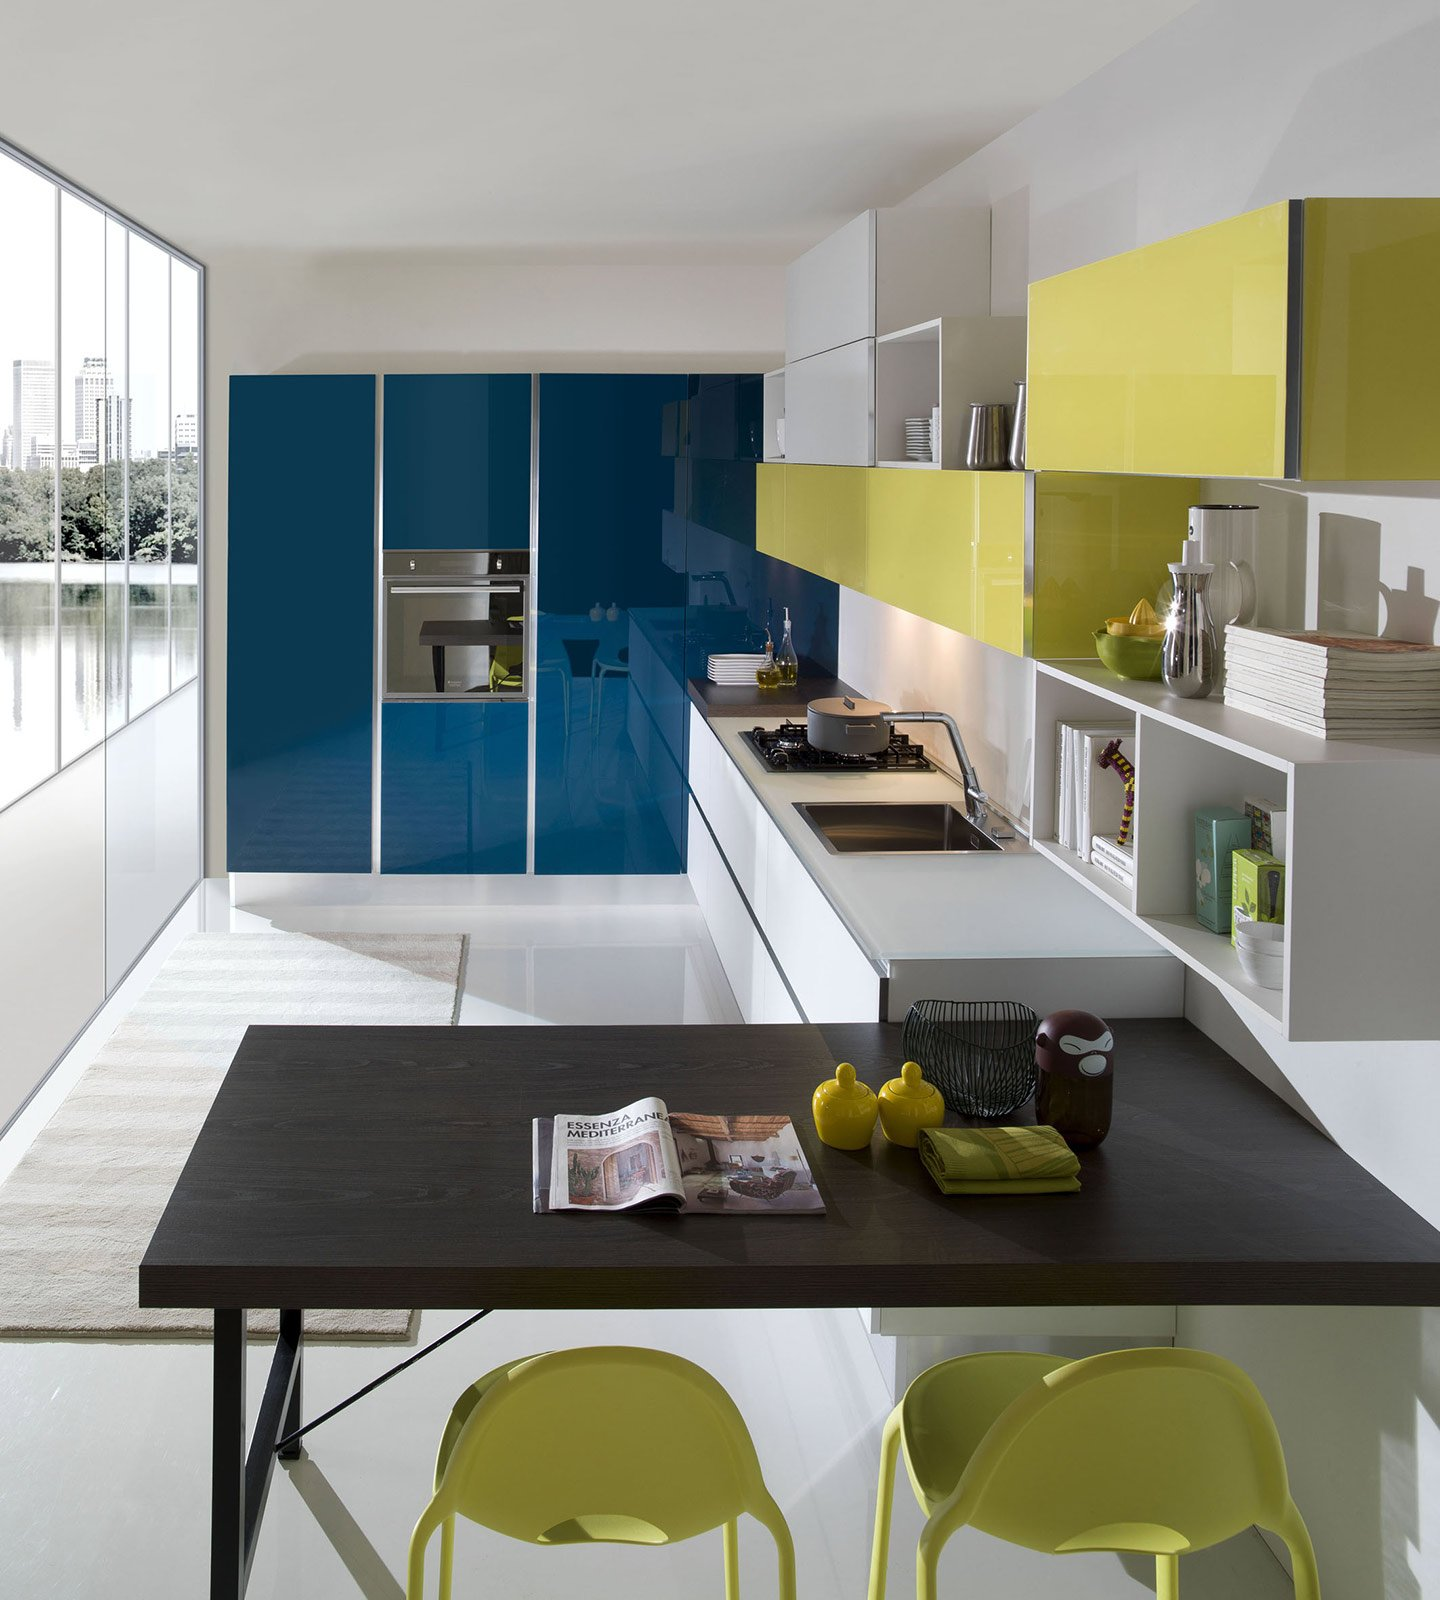 Cucine colorate come un quadro contemporaneo cose di casa for Piani di casa aperti con grandi cucine